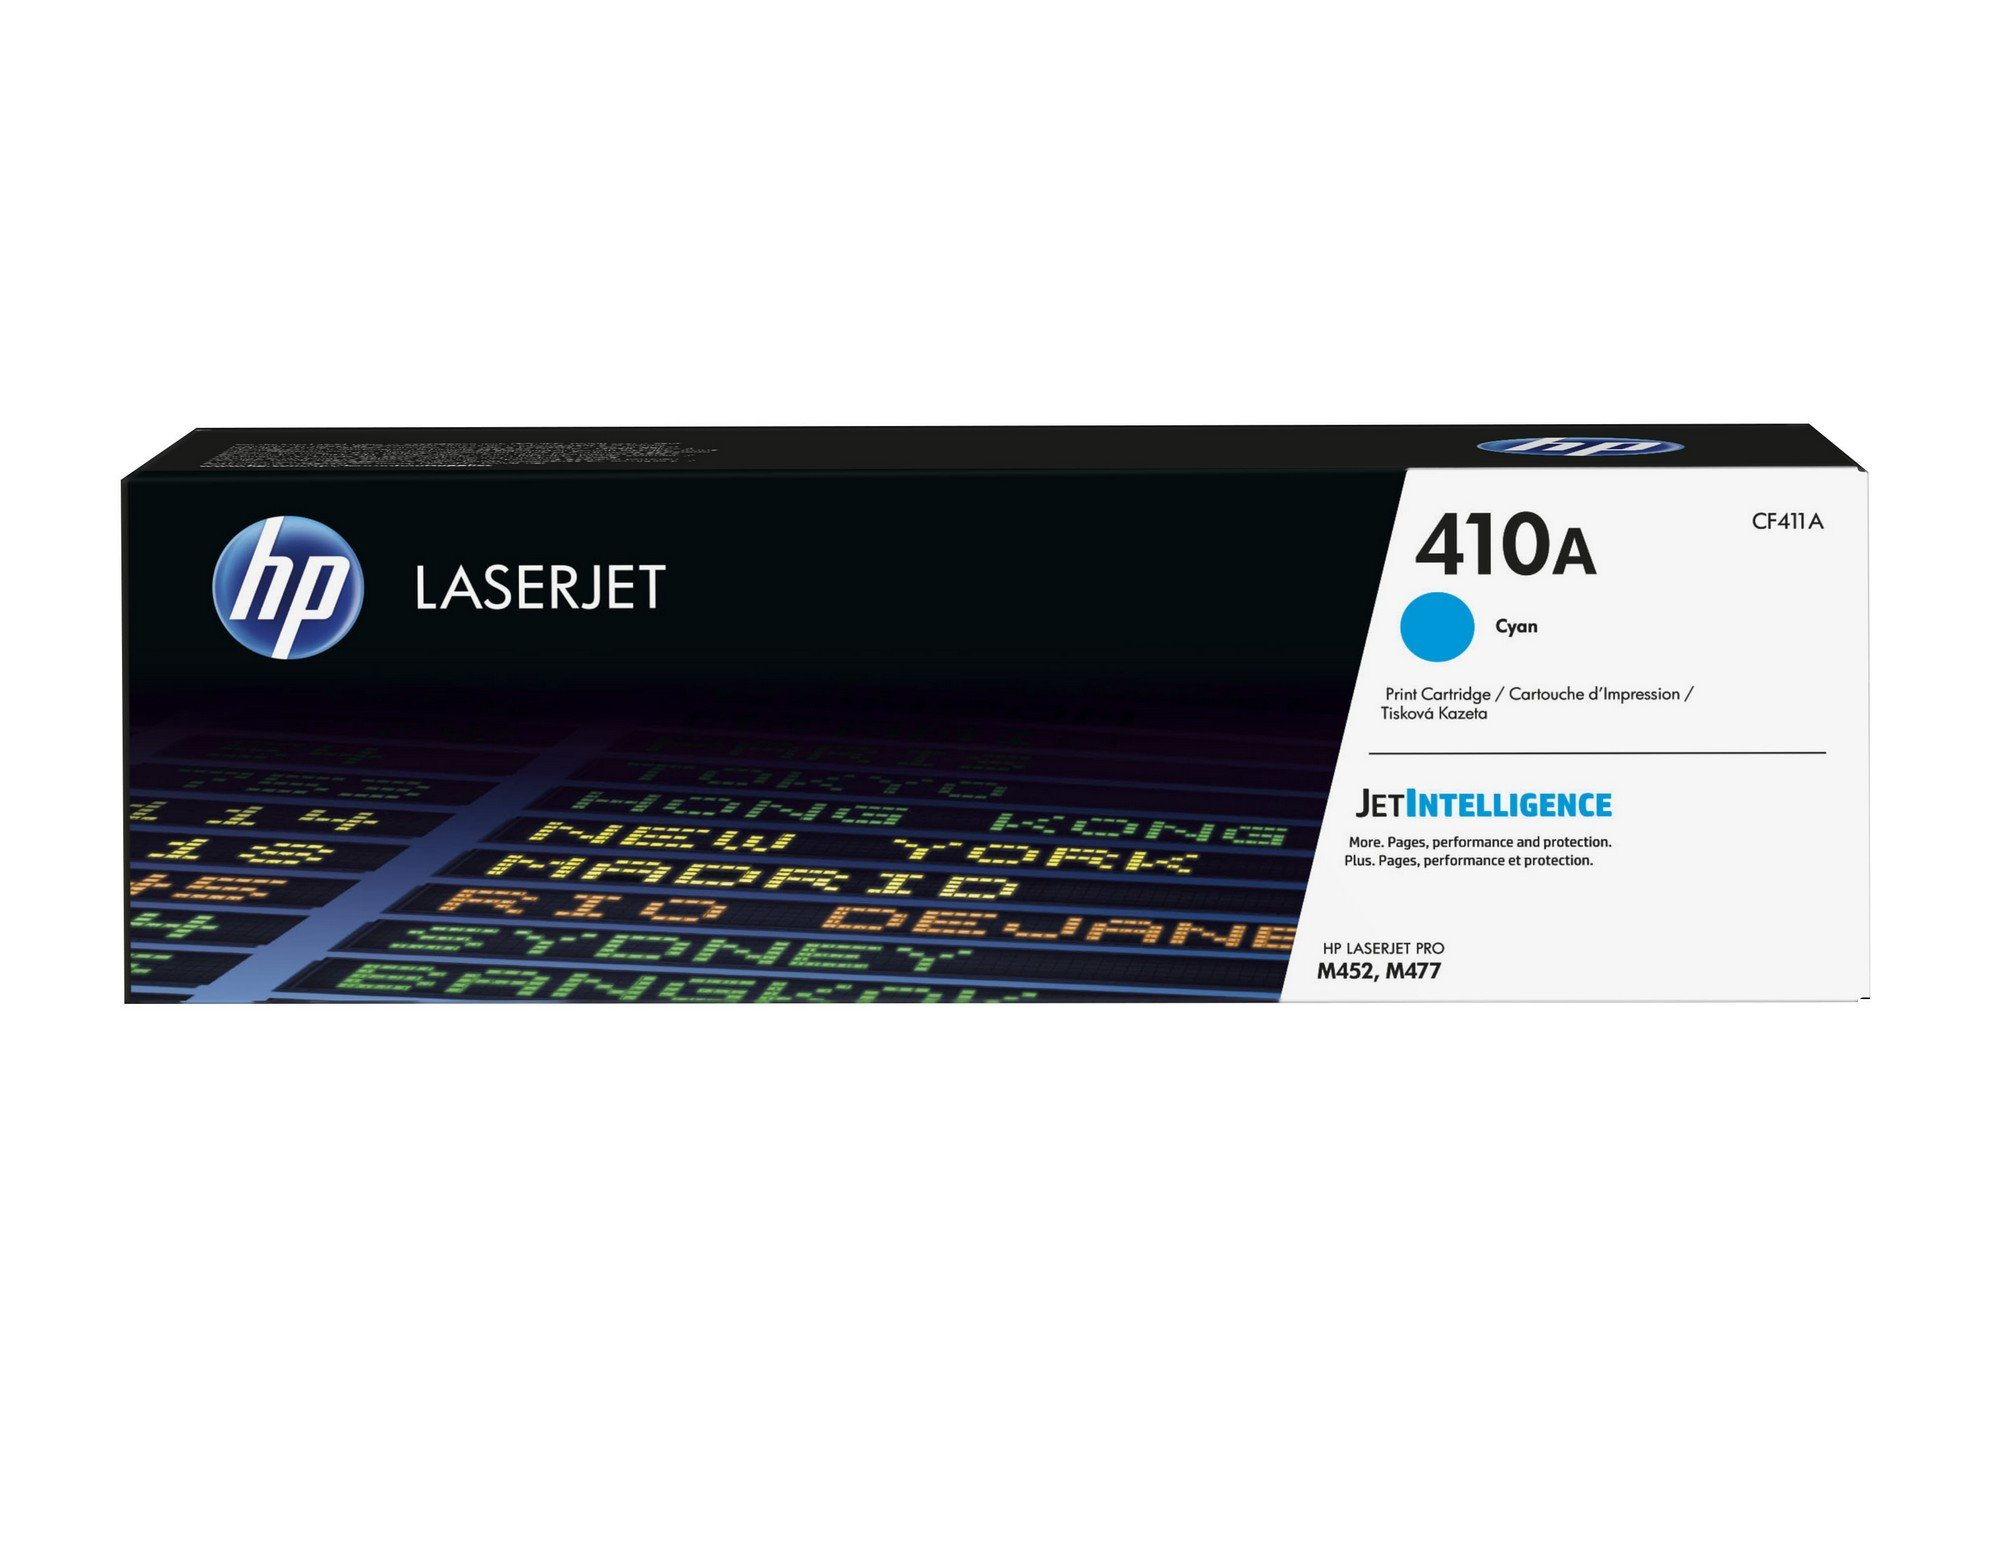 HP 410A (CF411A) Toner Cartridge, Cyan for HP Color LaserJet Pro M452dn, M452dw, M452nw, MFP M377dw, MFP M477fdn, MFP M477fdw, MFP M477fnw by HP